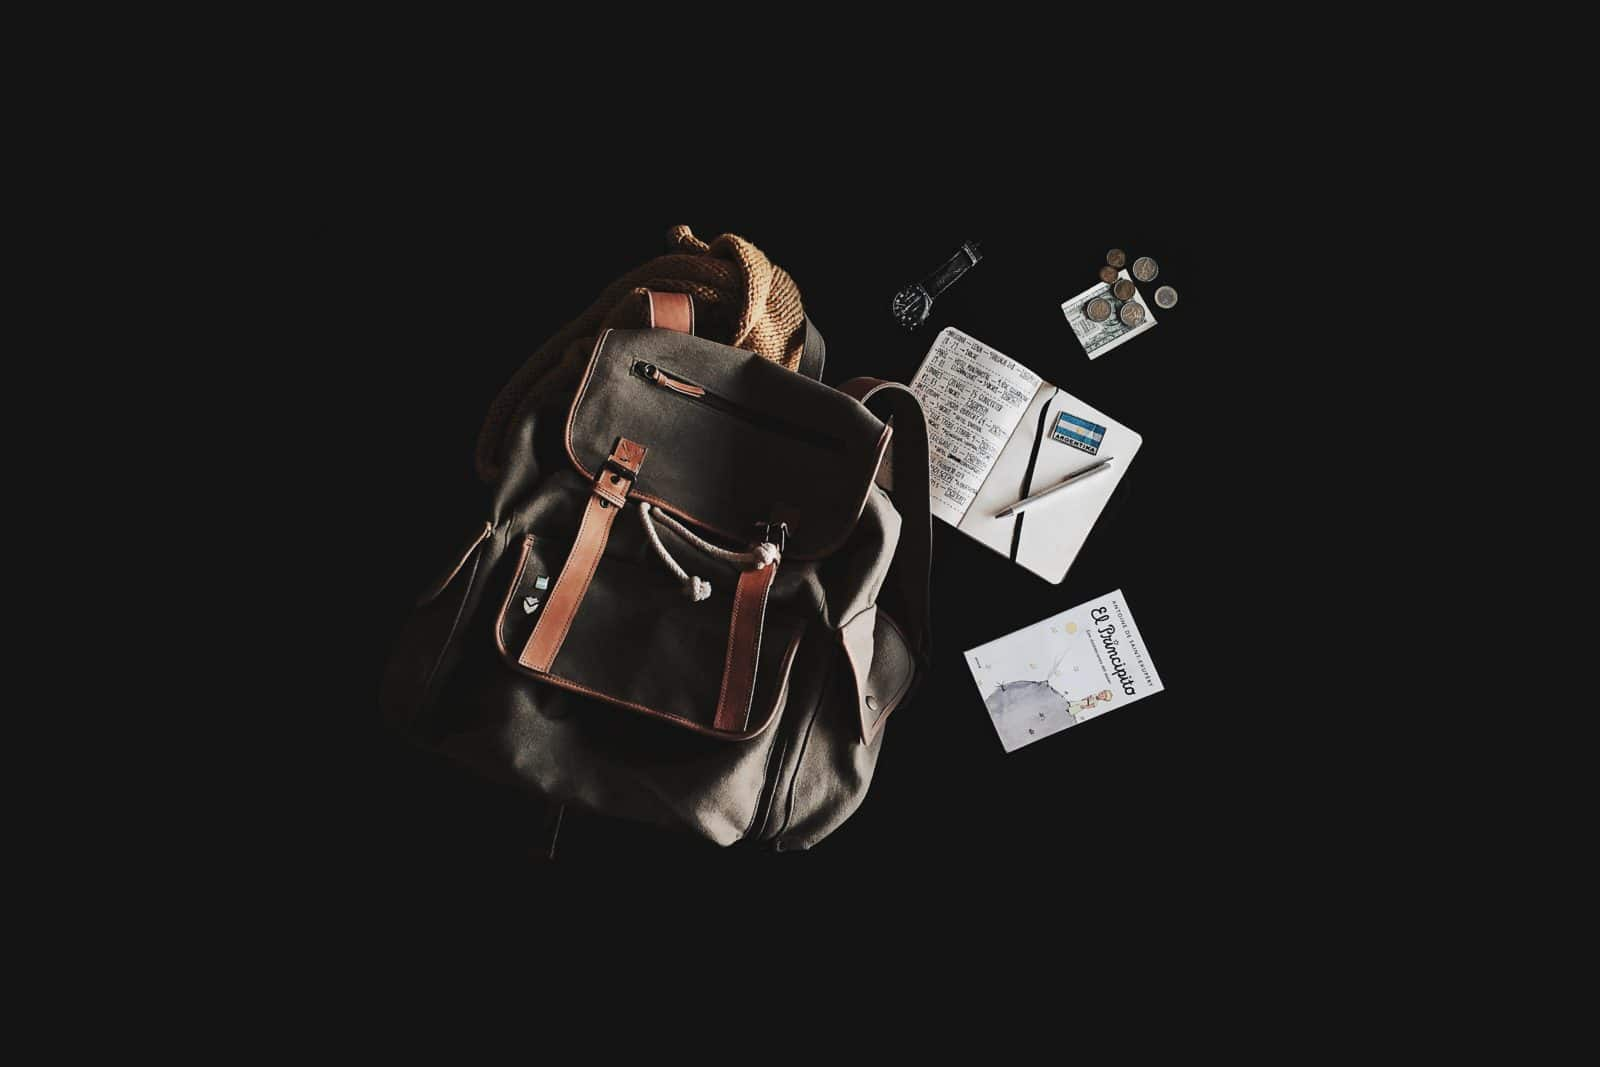 Photo by Cynthia del Río on Unsplash. Backpack, travel, journey, pack